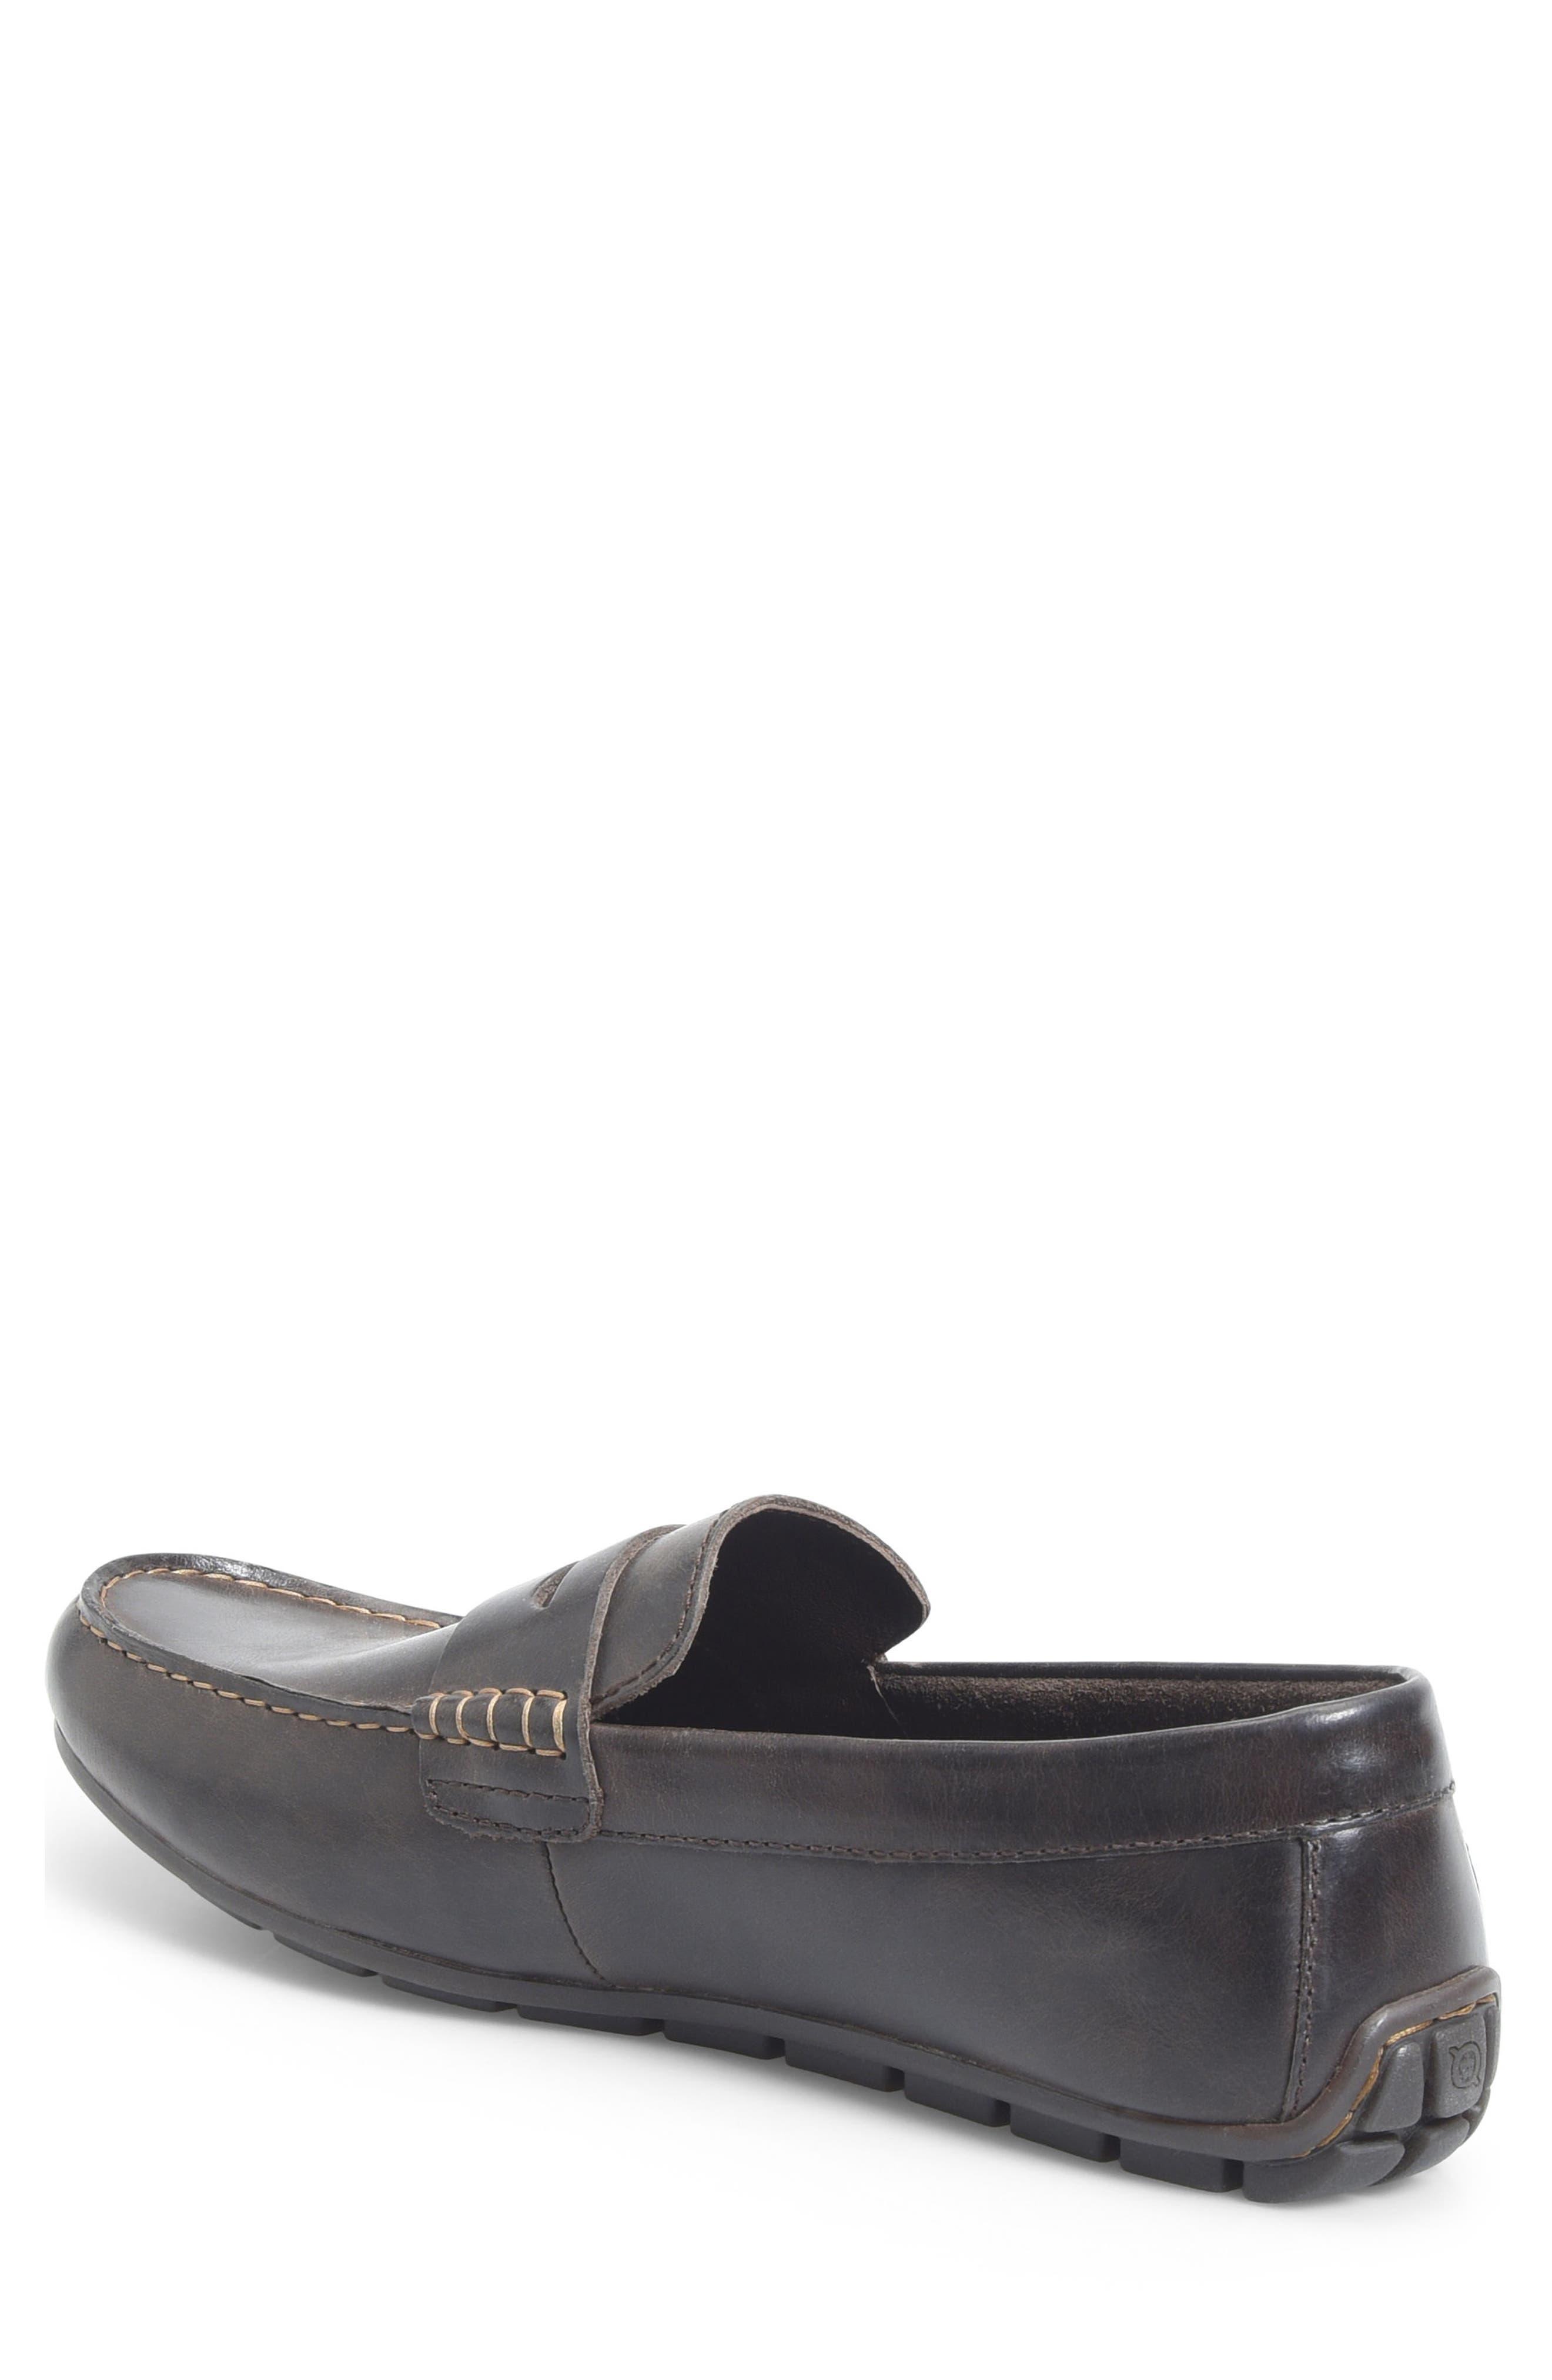 Andes Driving Shoe,                             Alternate thumbnail 10, color,